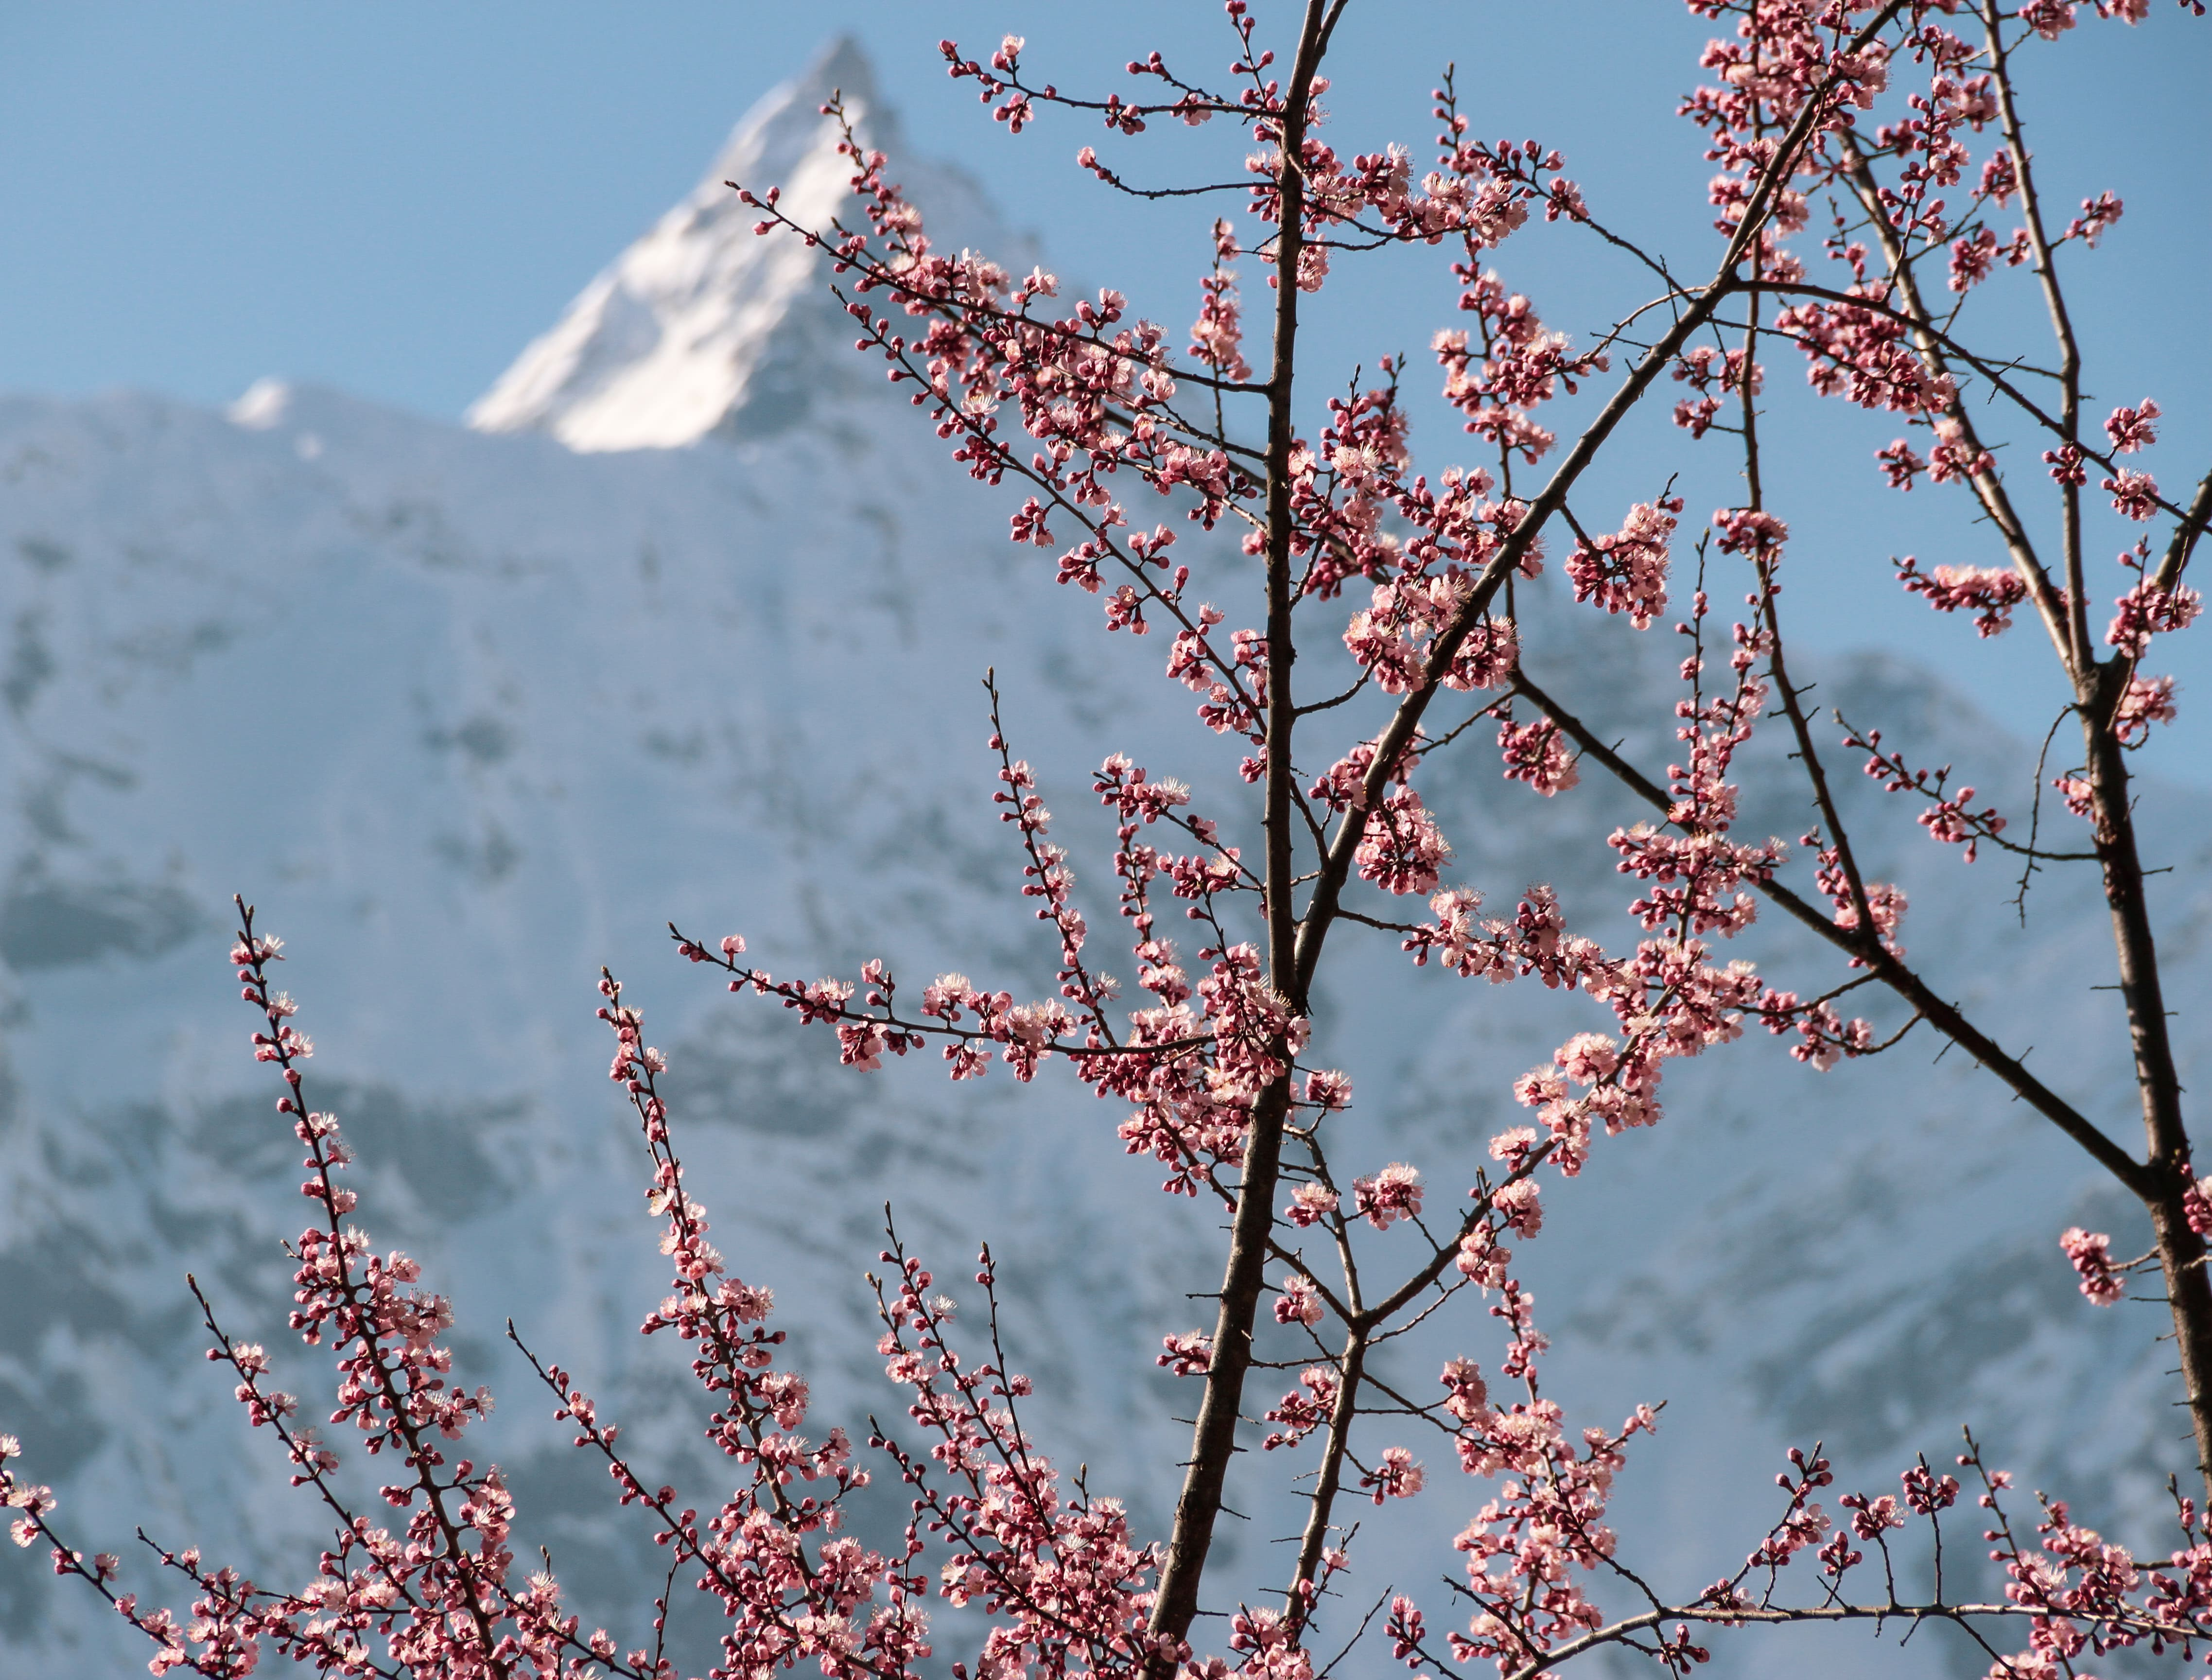 Blooming flowers on the branches of the trees in Kalpa